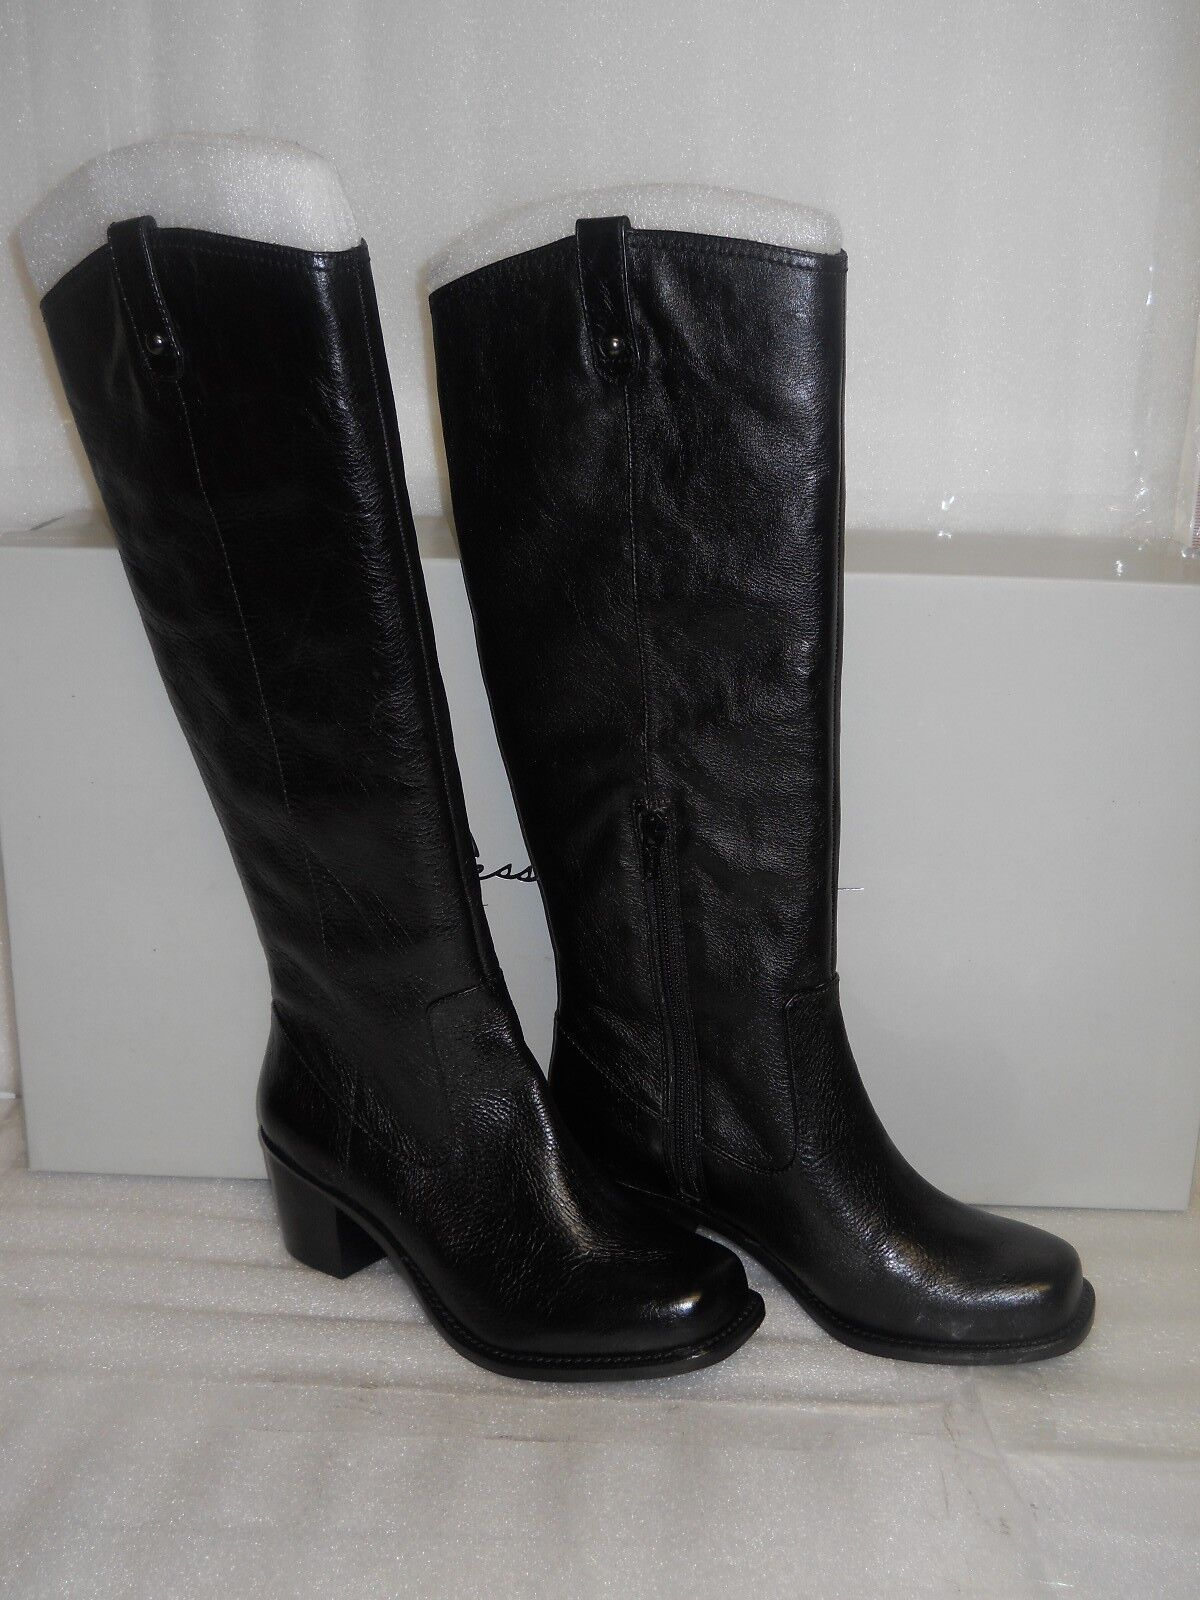 Jessica Simpson New Womens Chad Black Leather Boots 6 M shoes